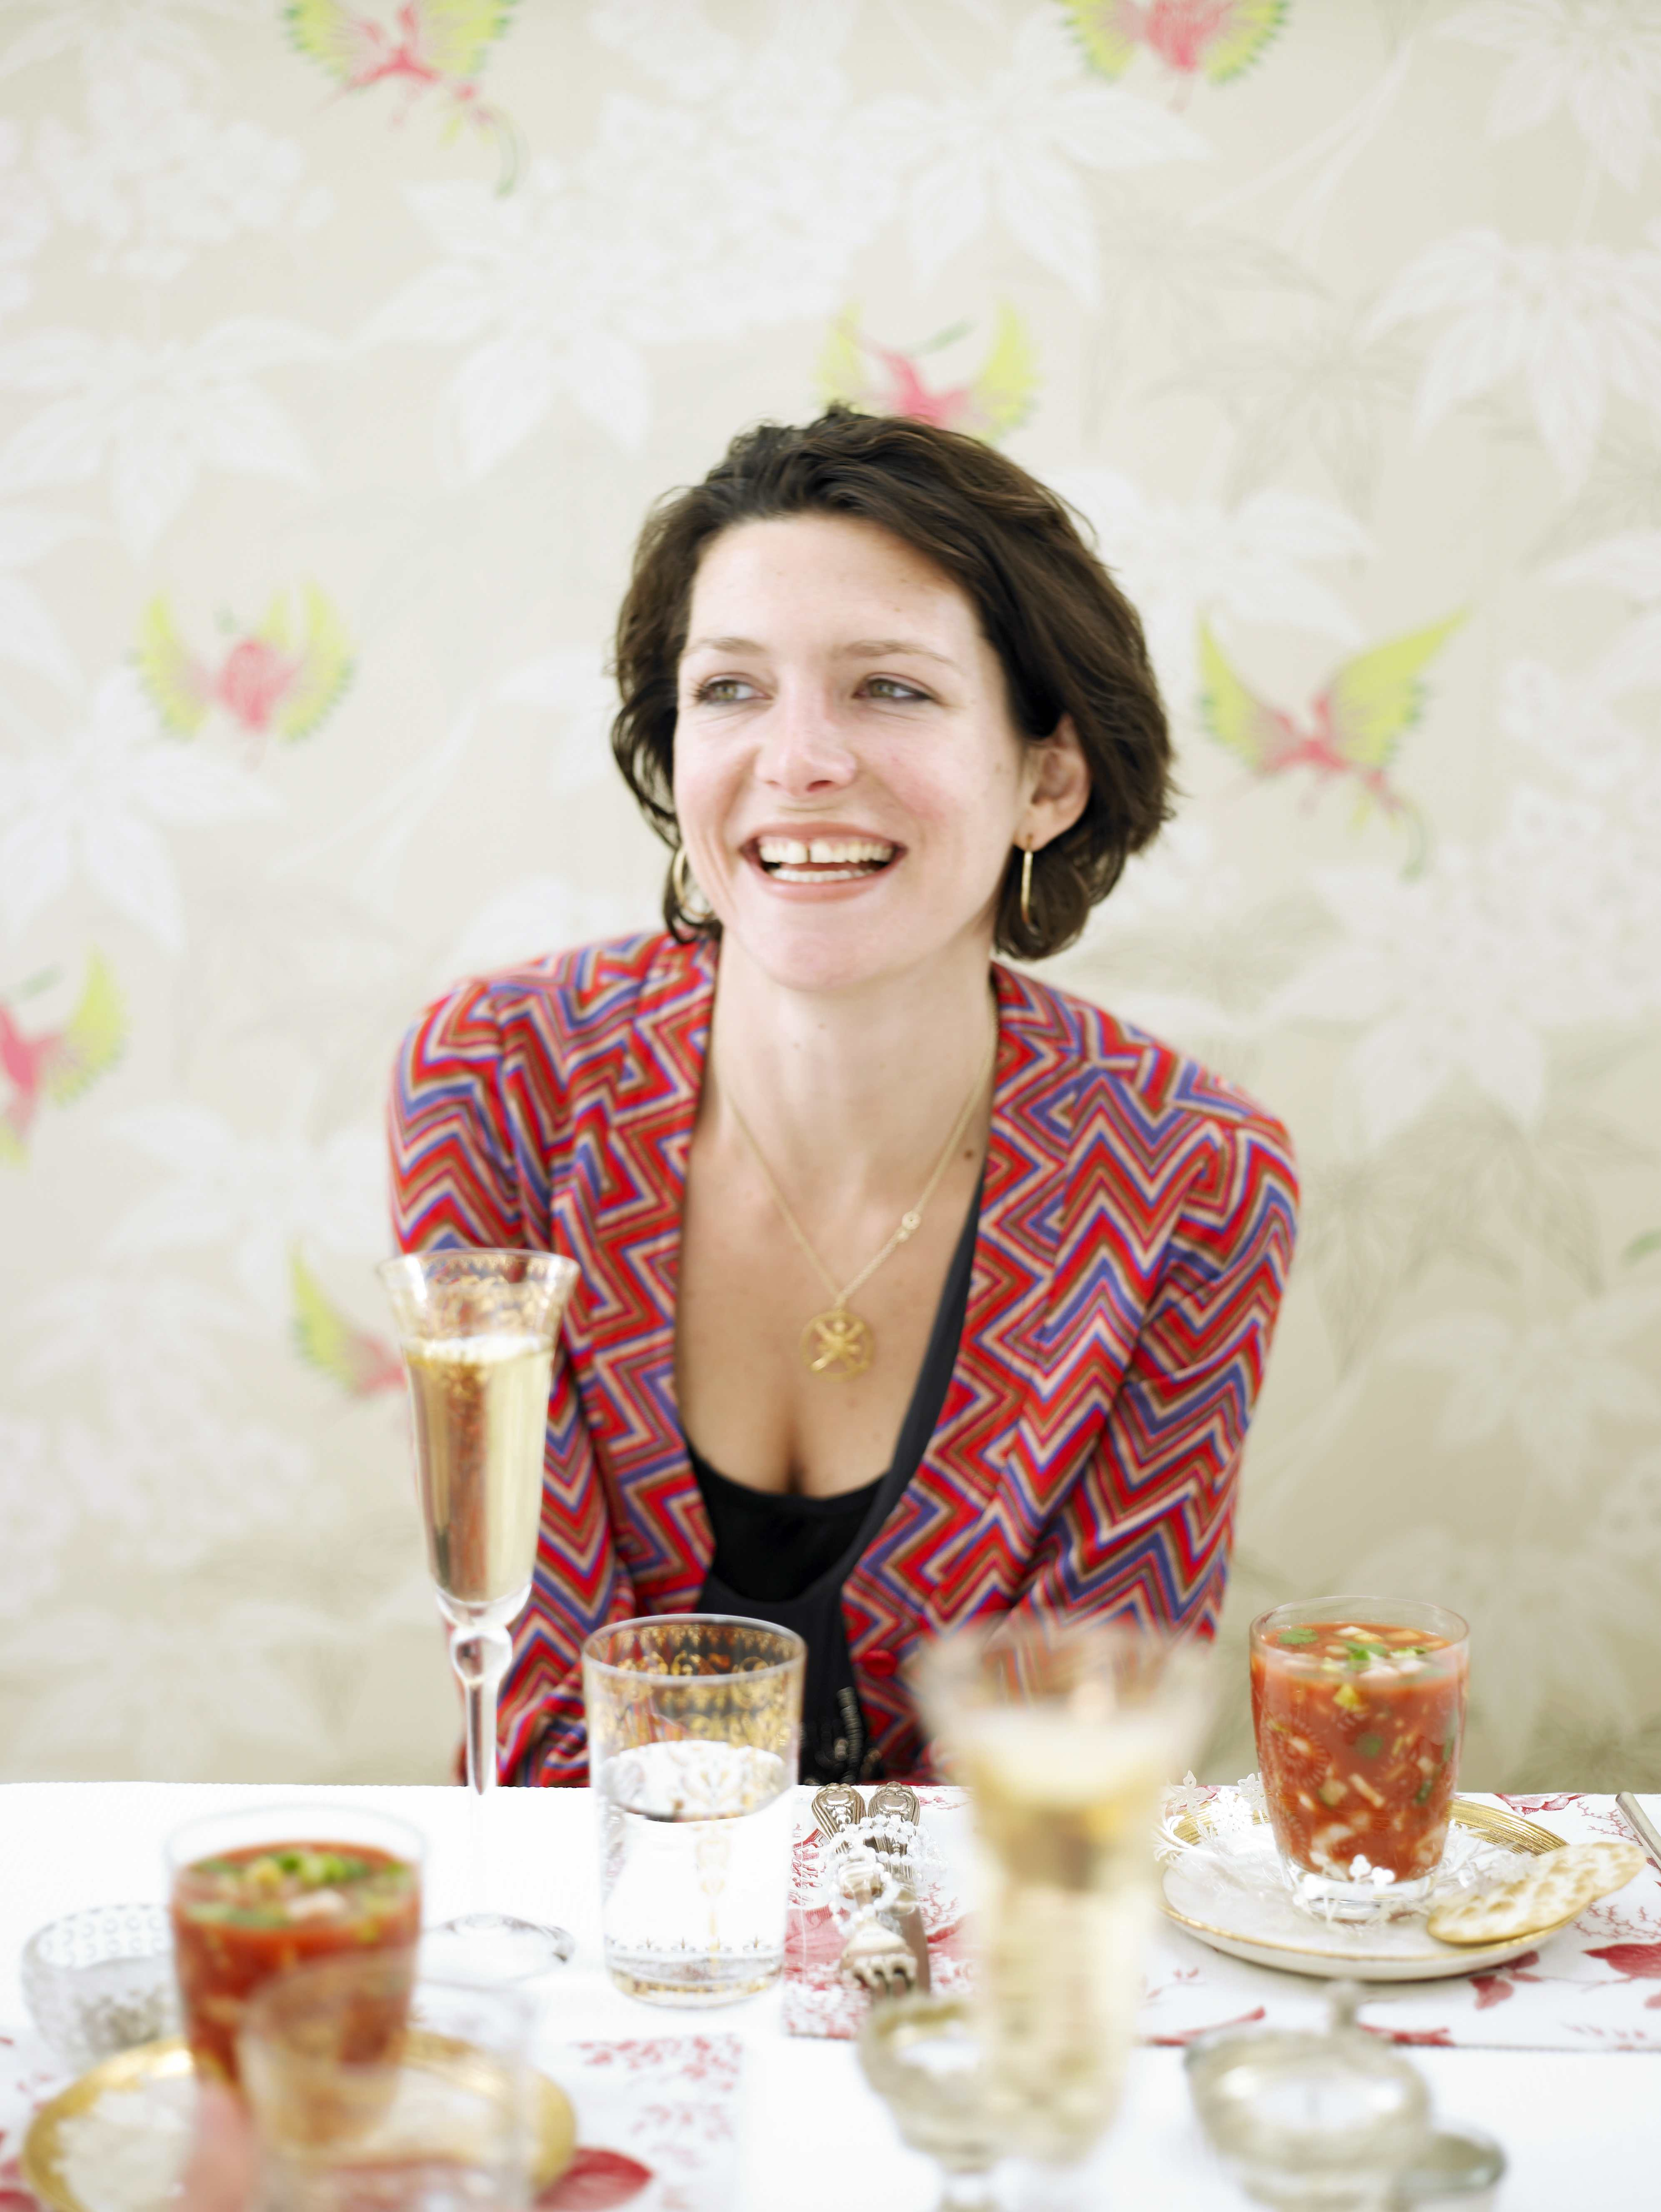 Wahaca founder at Women of the Future Summit